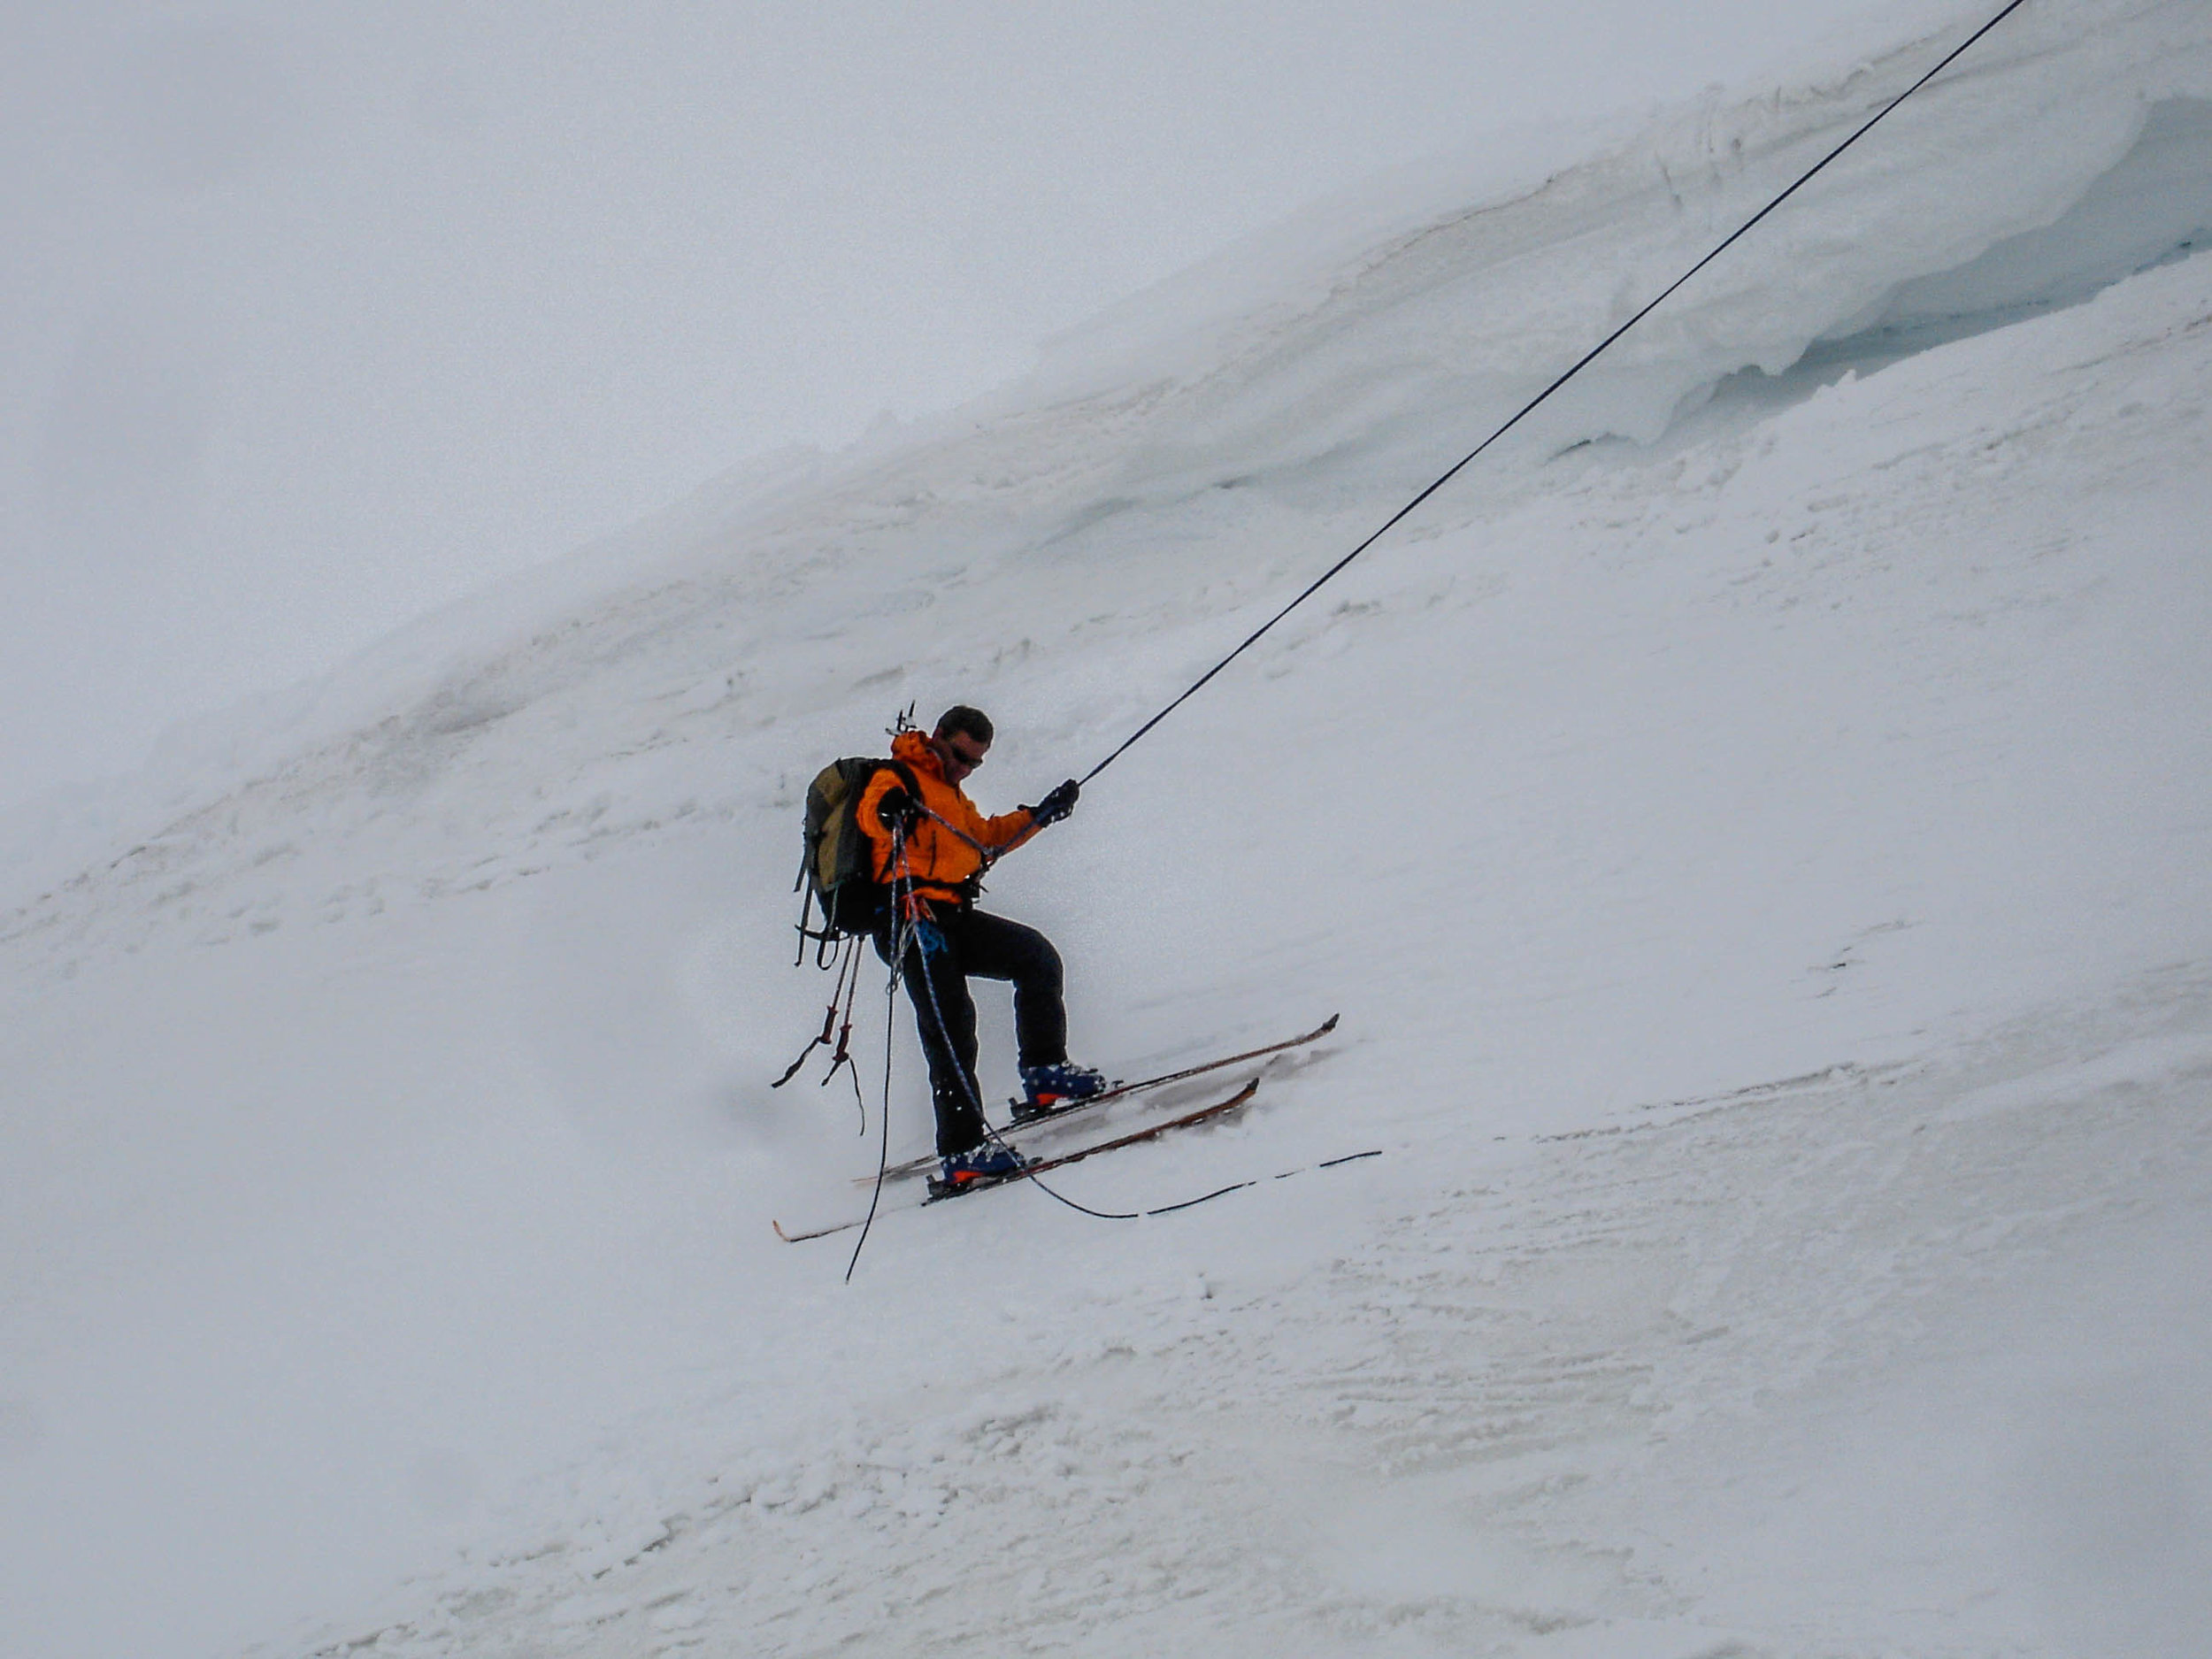 Rapelling with skis